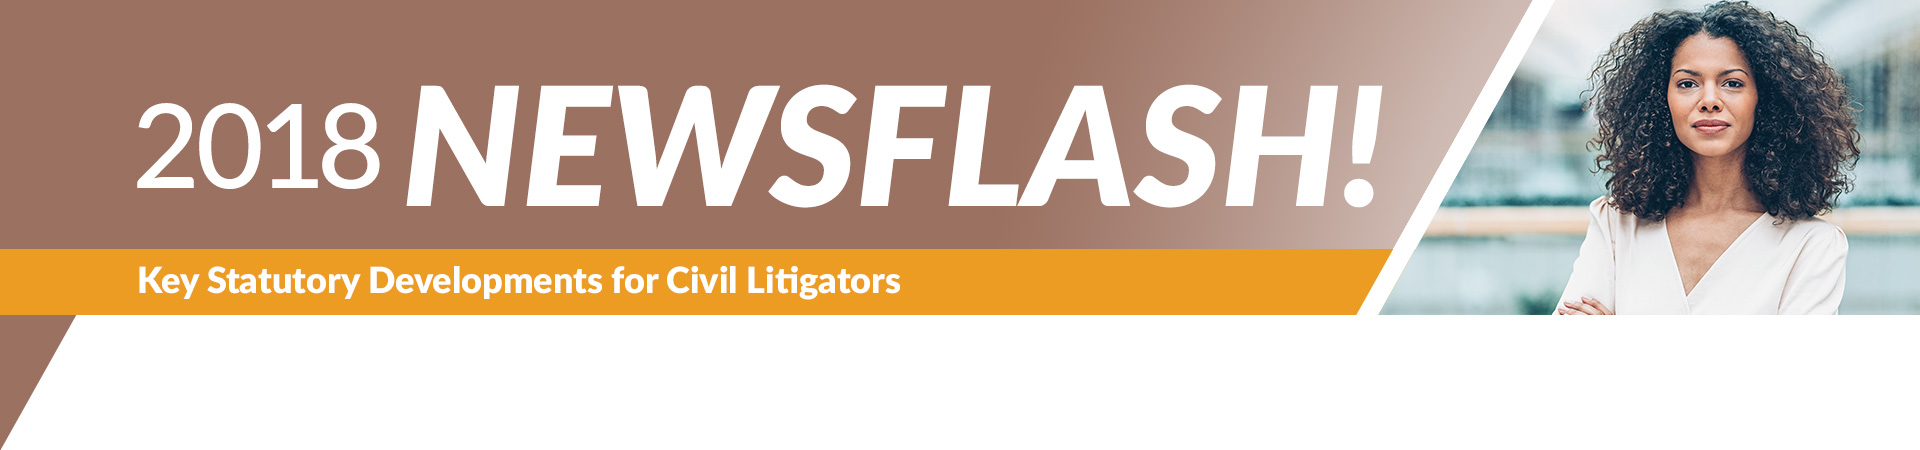 2018 NewsFlash Civil Litigators